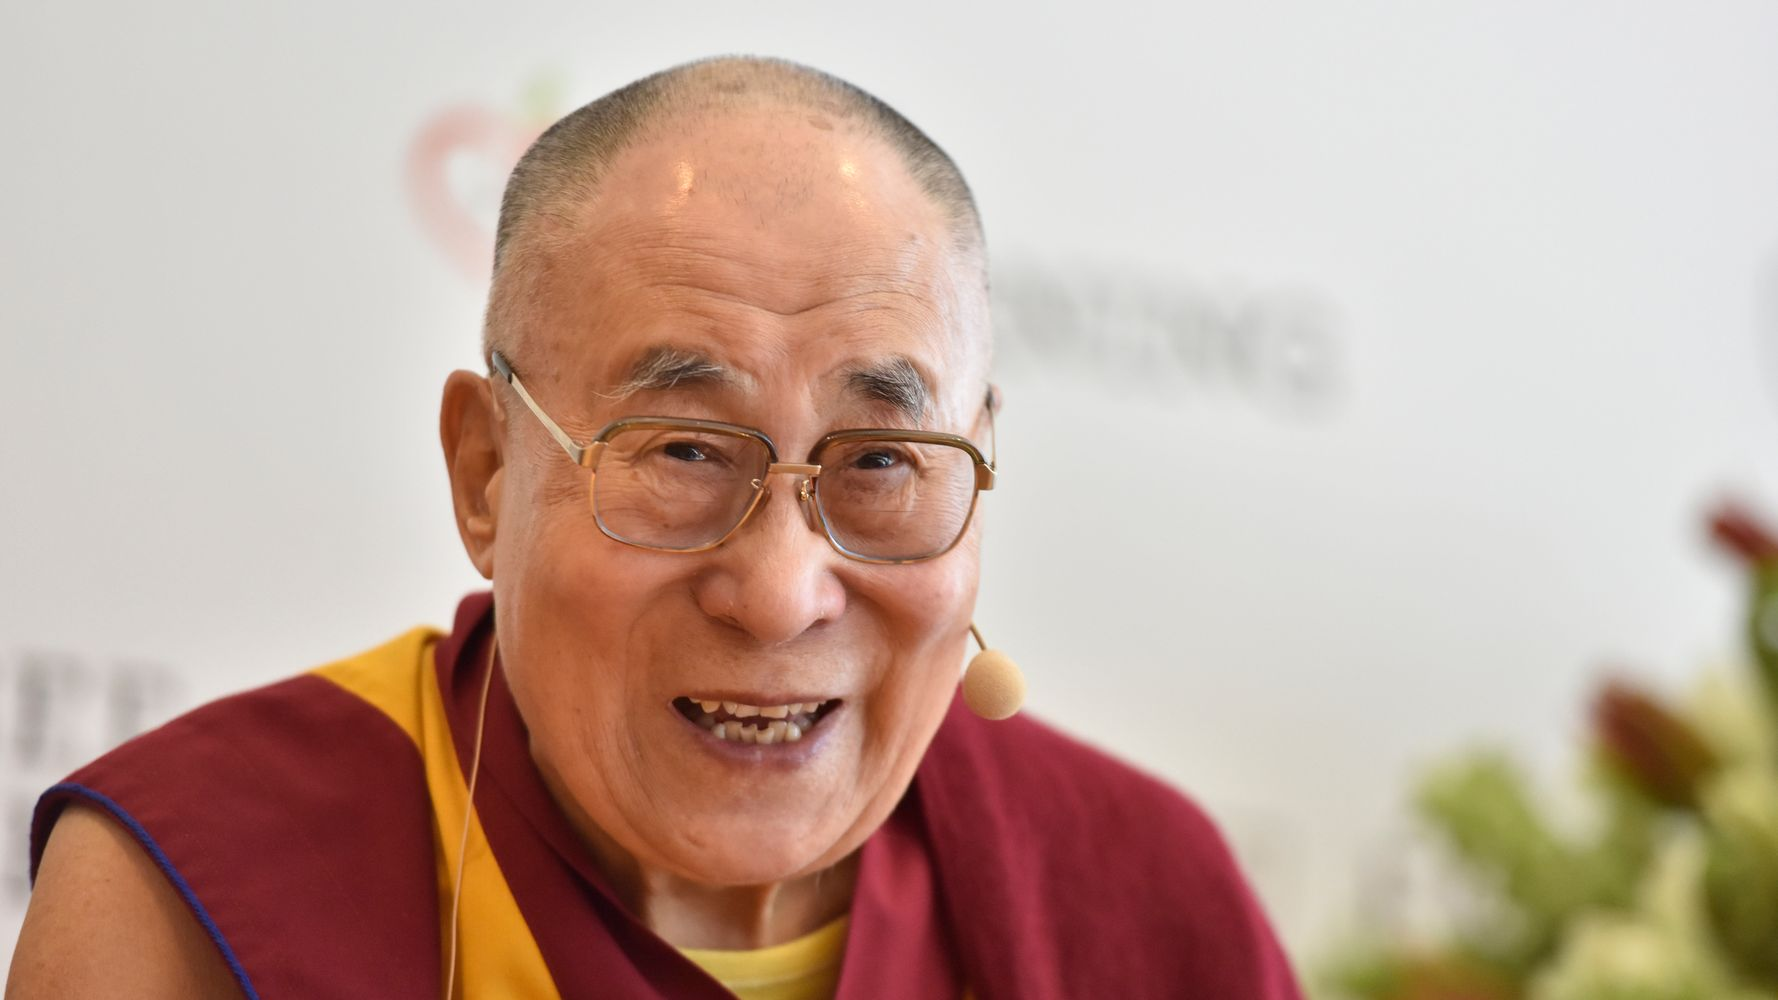 Dalai Lama Calls For Climate Change Action In New Book, Suggests 'Buddha Would Be Green'